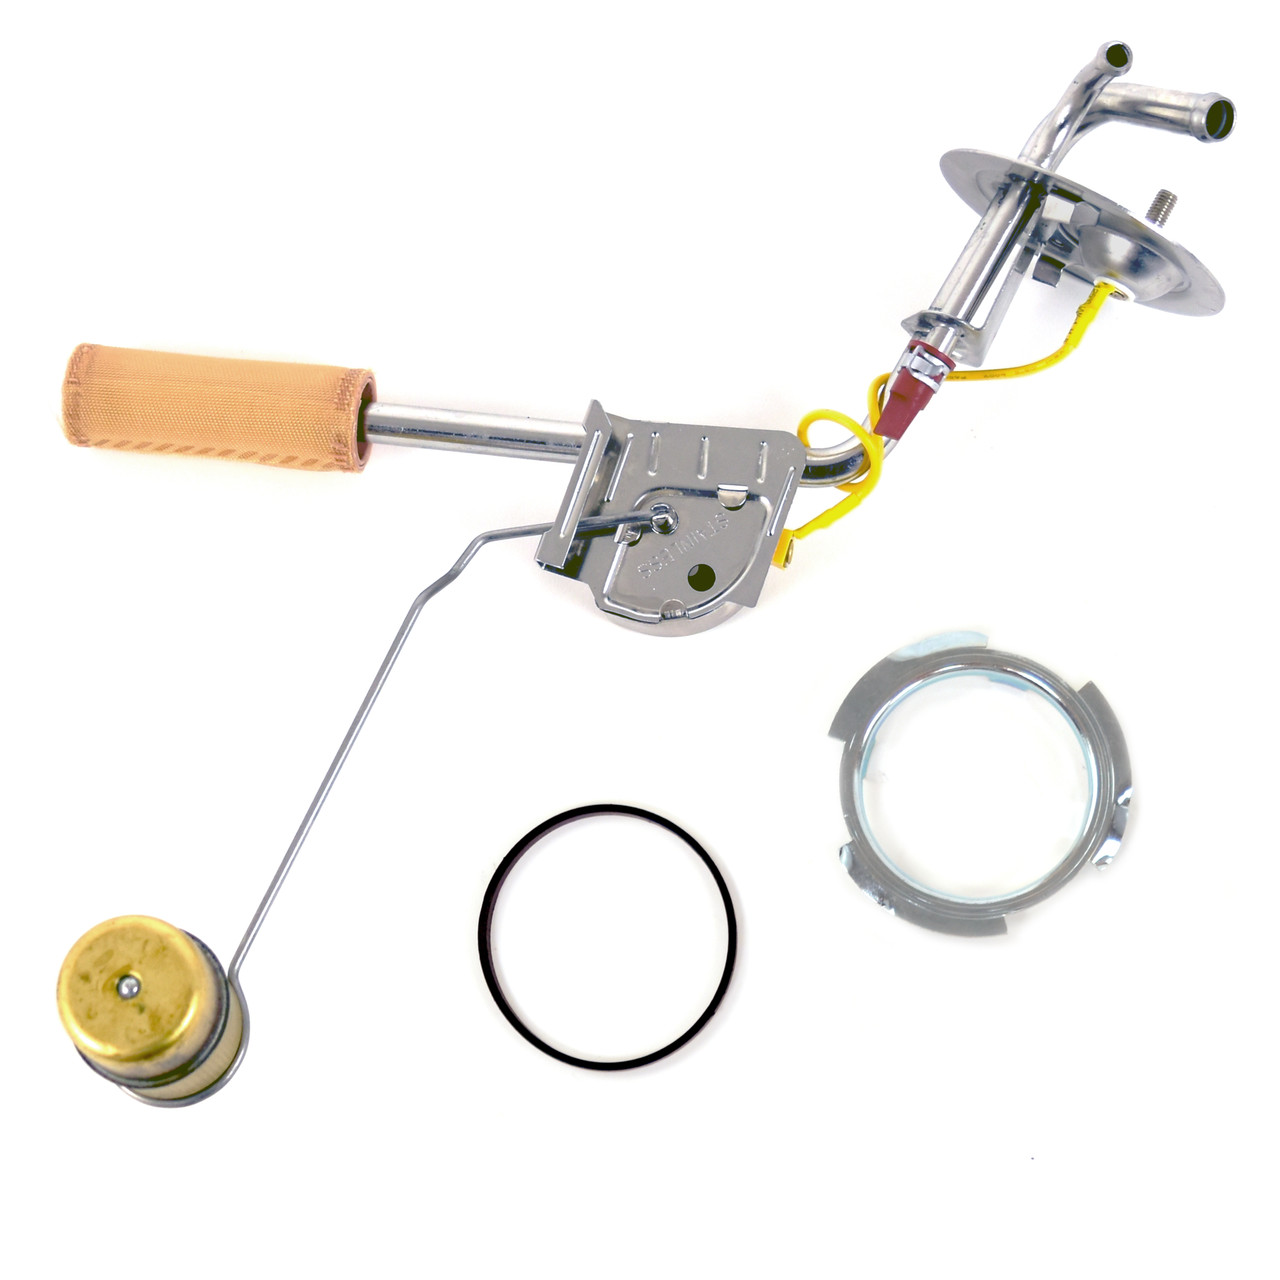 "Stainless Steel Fuel Sending Unit 3/8"" With 1/4"" Return Line [FM-EF011]"